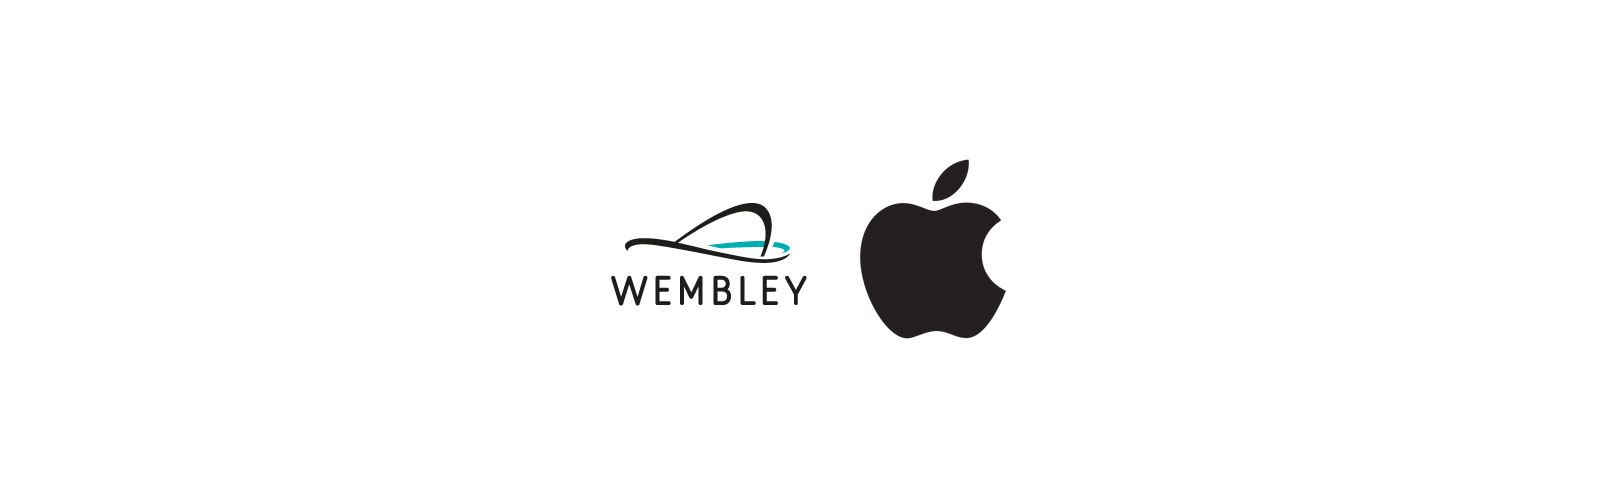 wembley-apple